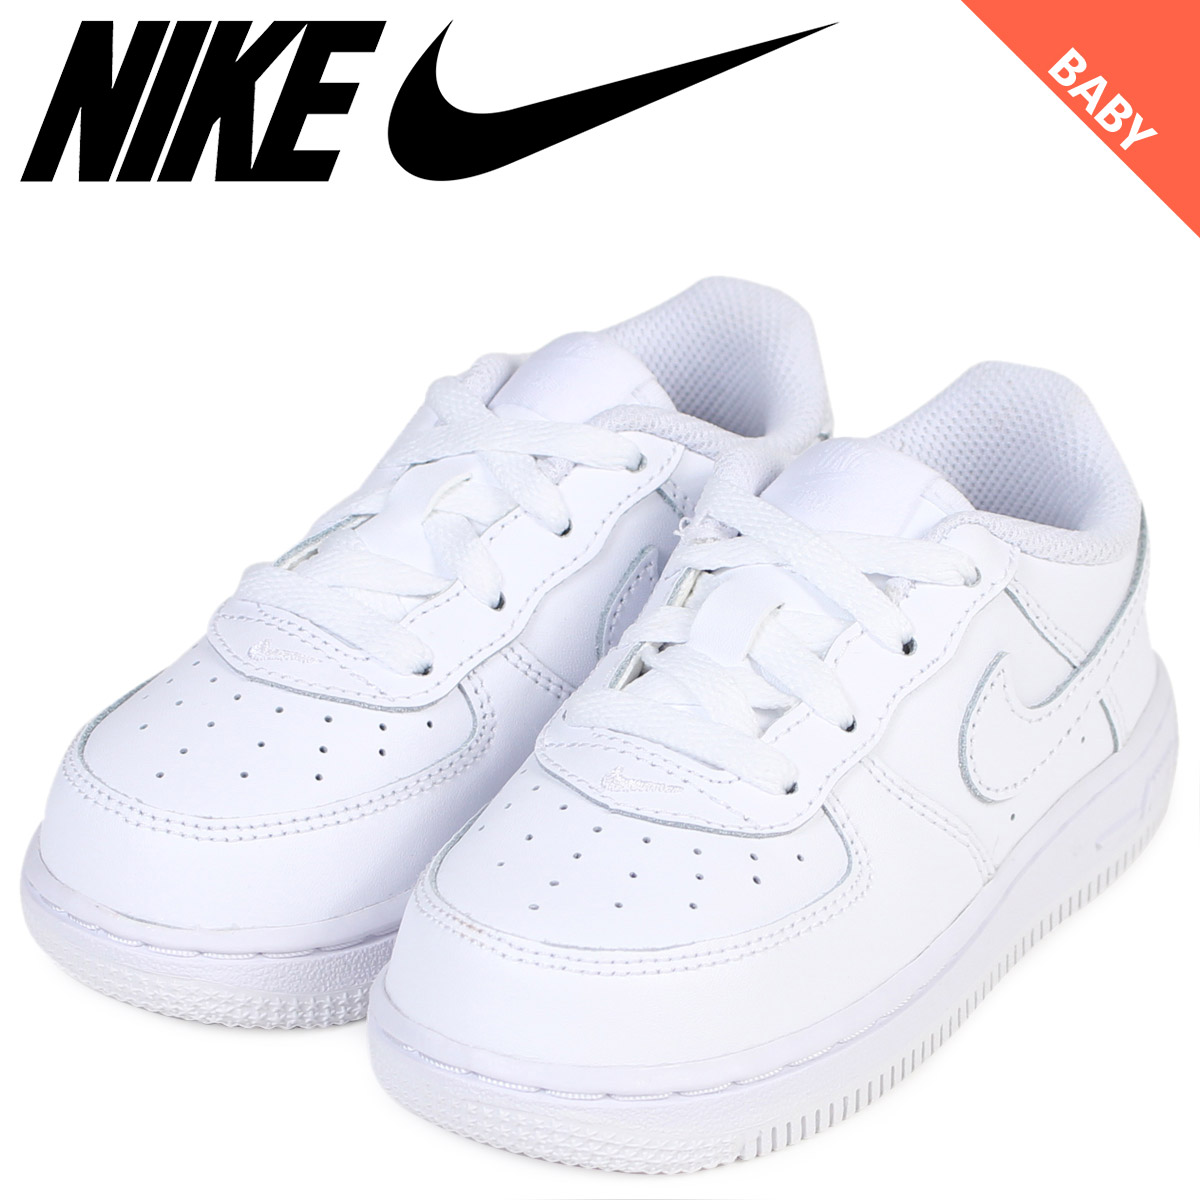 92e74481914d Sugar Online Shop  NIKE Nike air force 1 baby sneakers AIR FORCE 1 ...